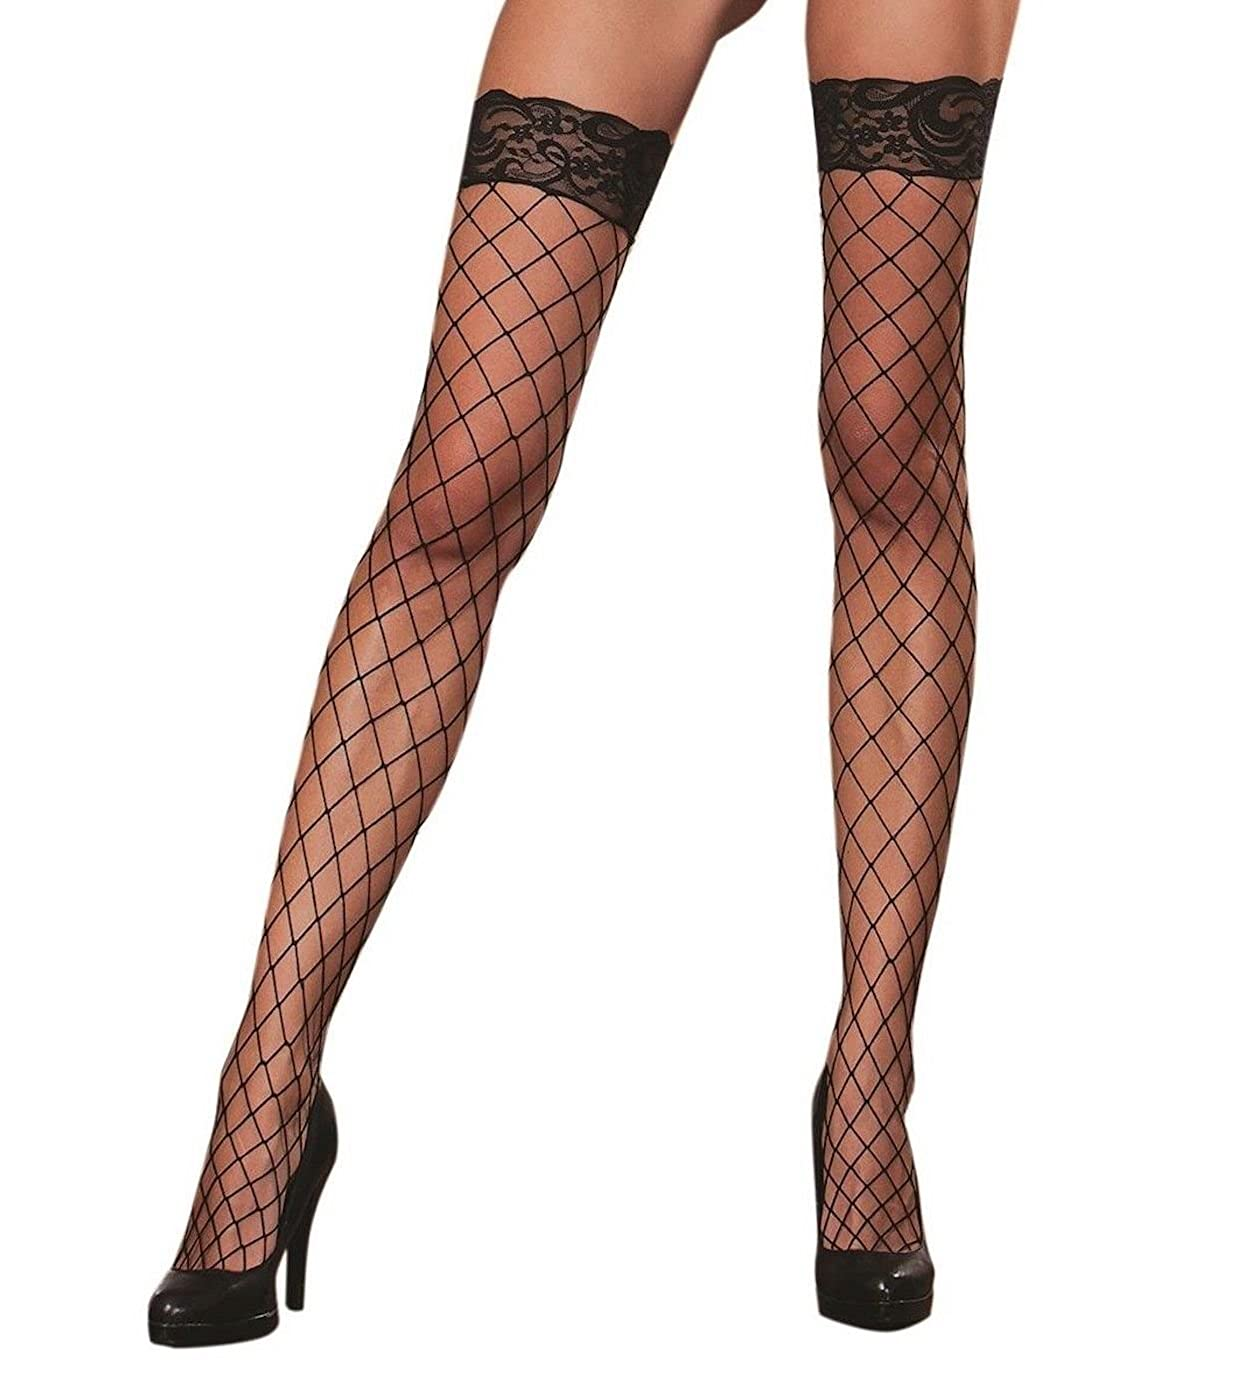 a0fd22b422 Dreamgirl Fence Net Thigh Highs. Large net hold ups. Black. One Size   Amazon.co.uk  Clothing